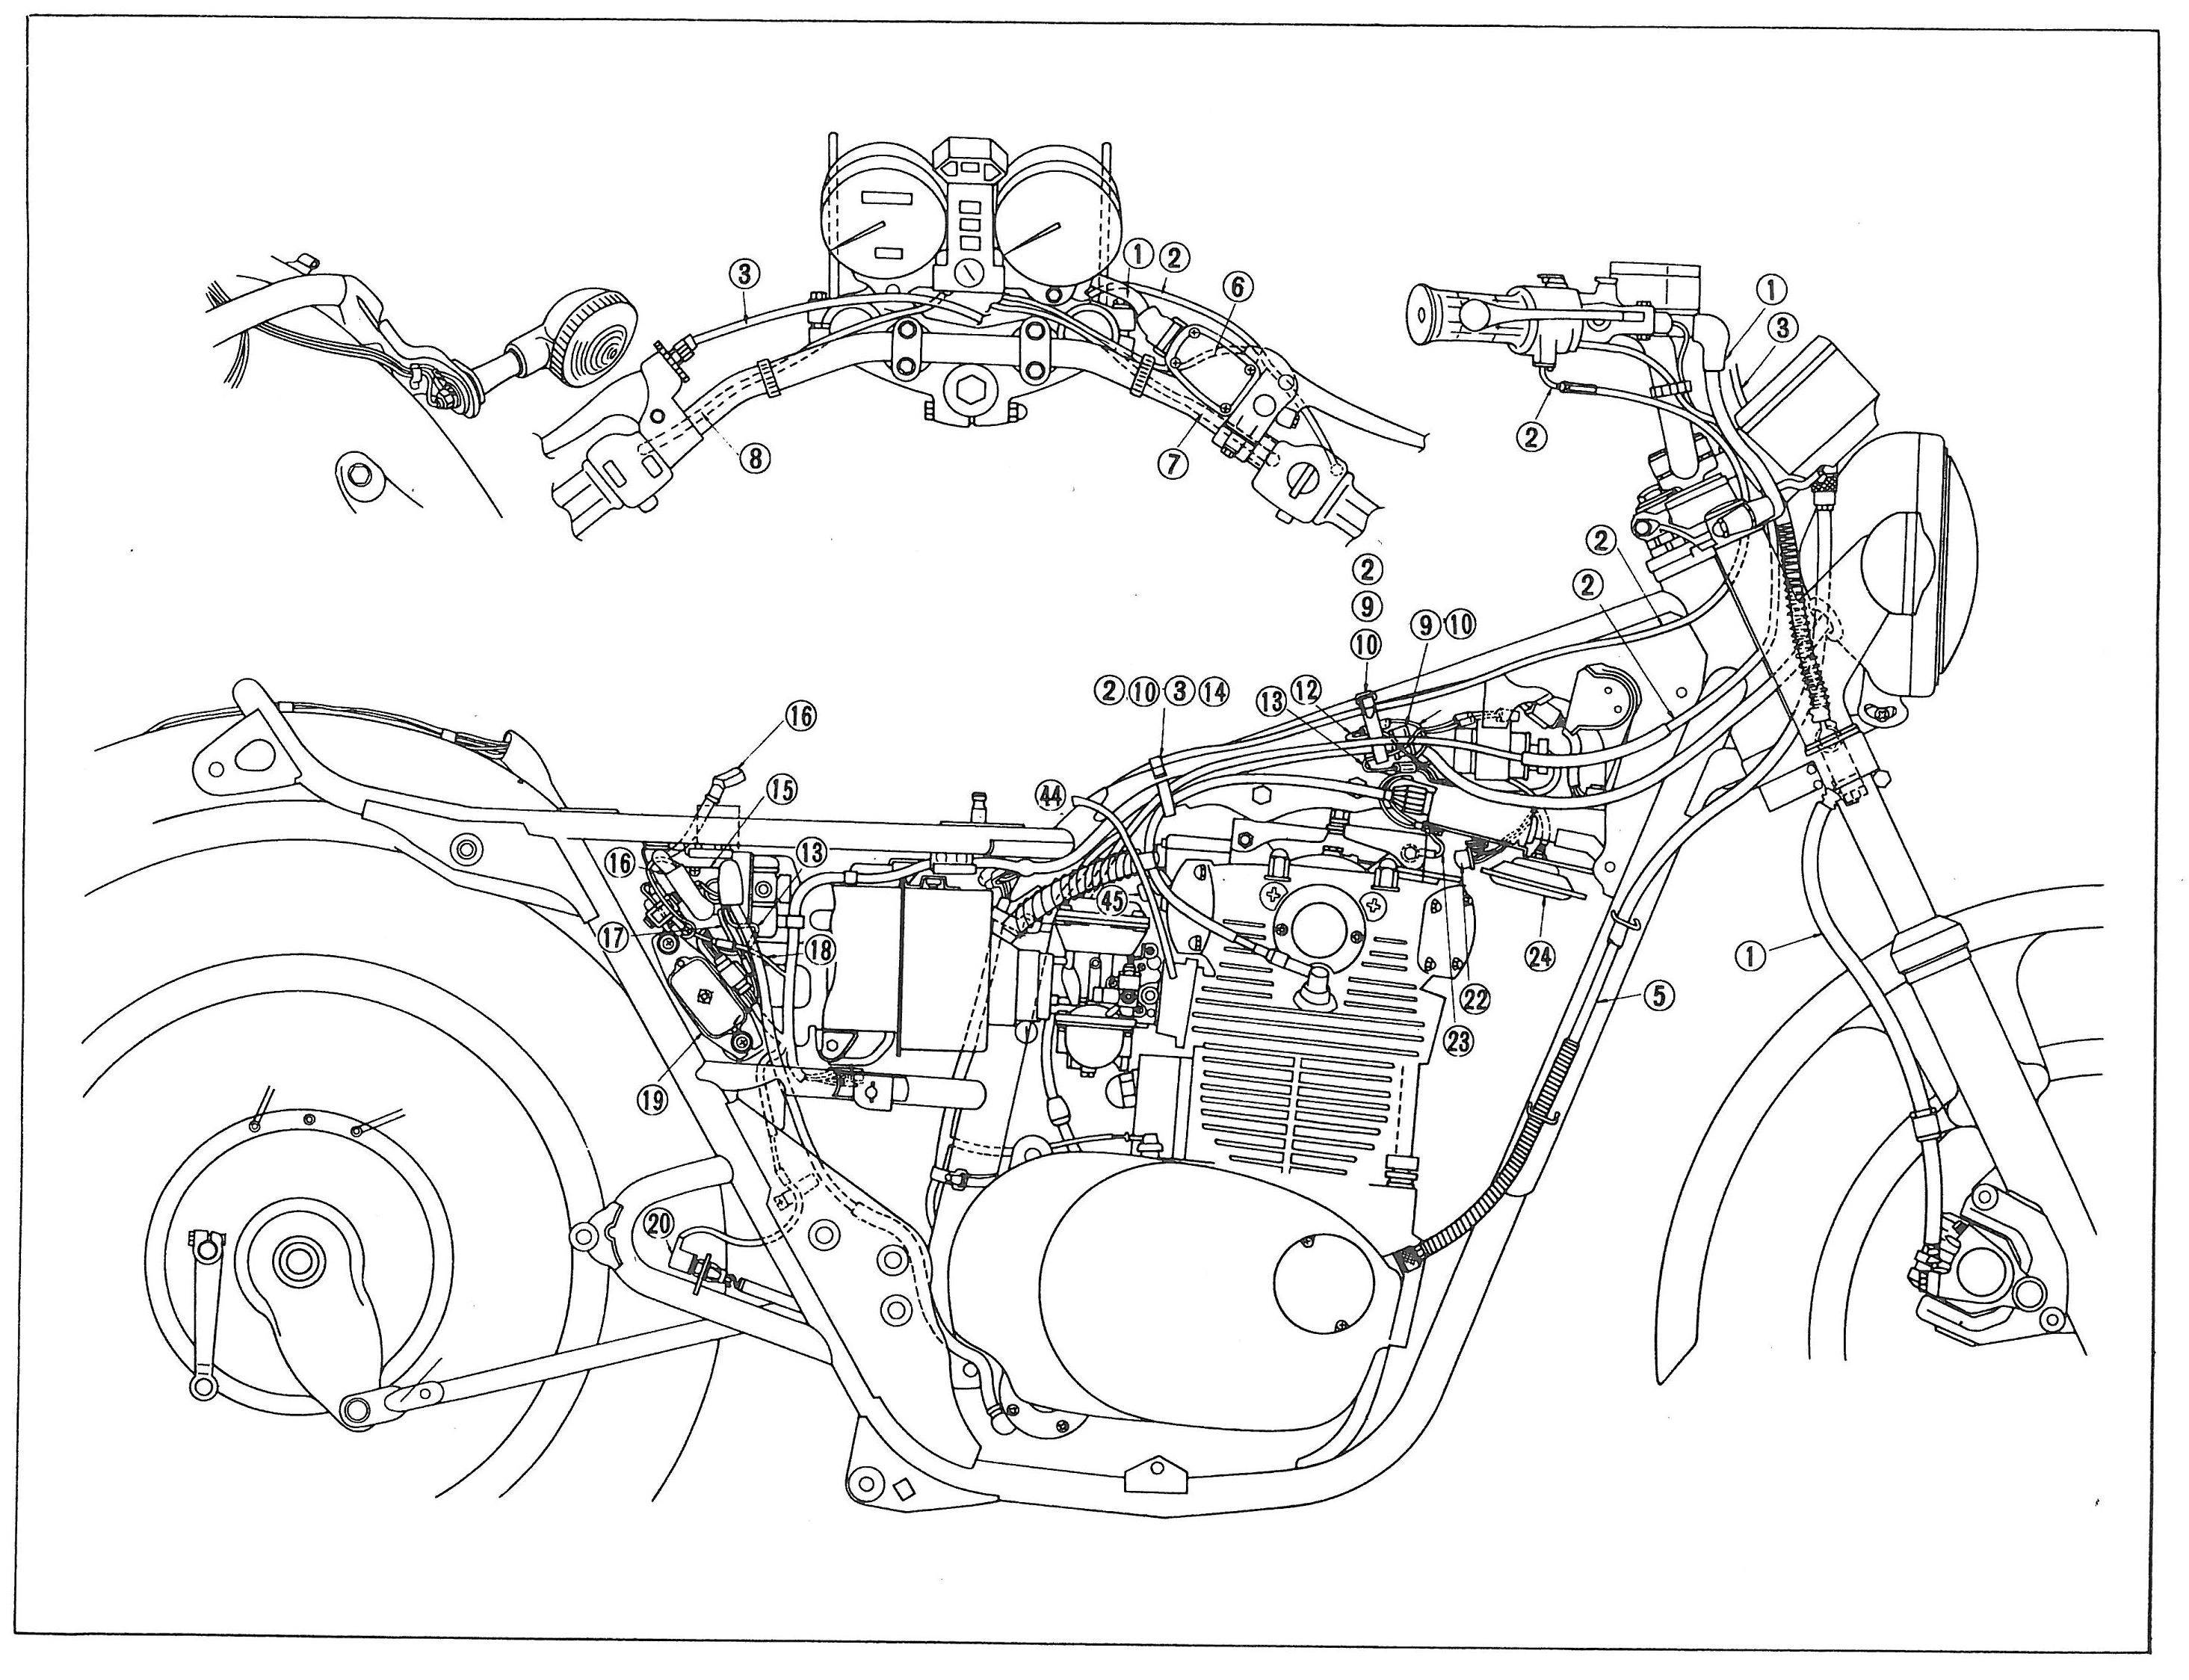 1979 Yamaha 650 Special Wiring Diagram